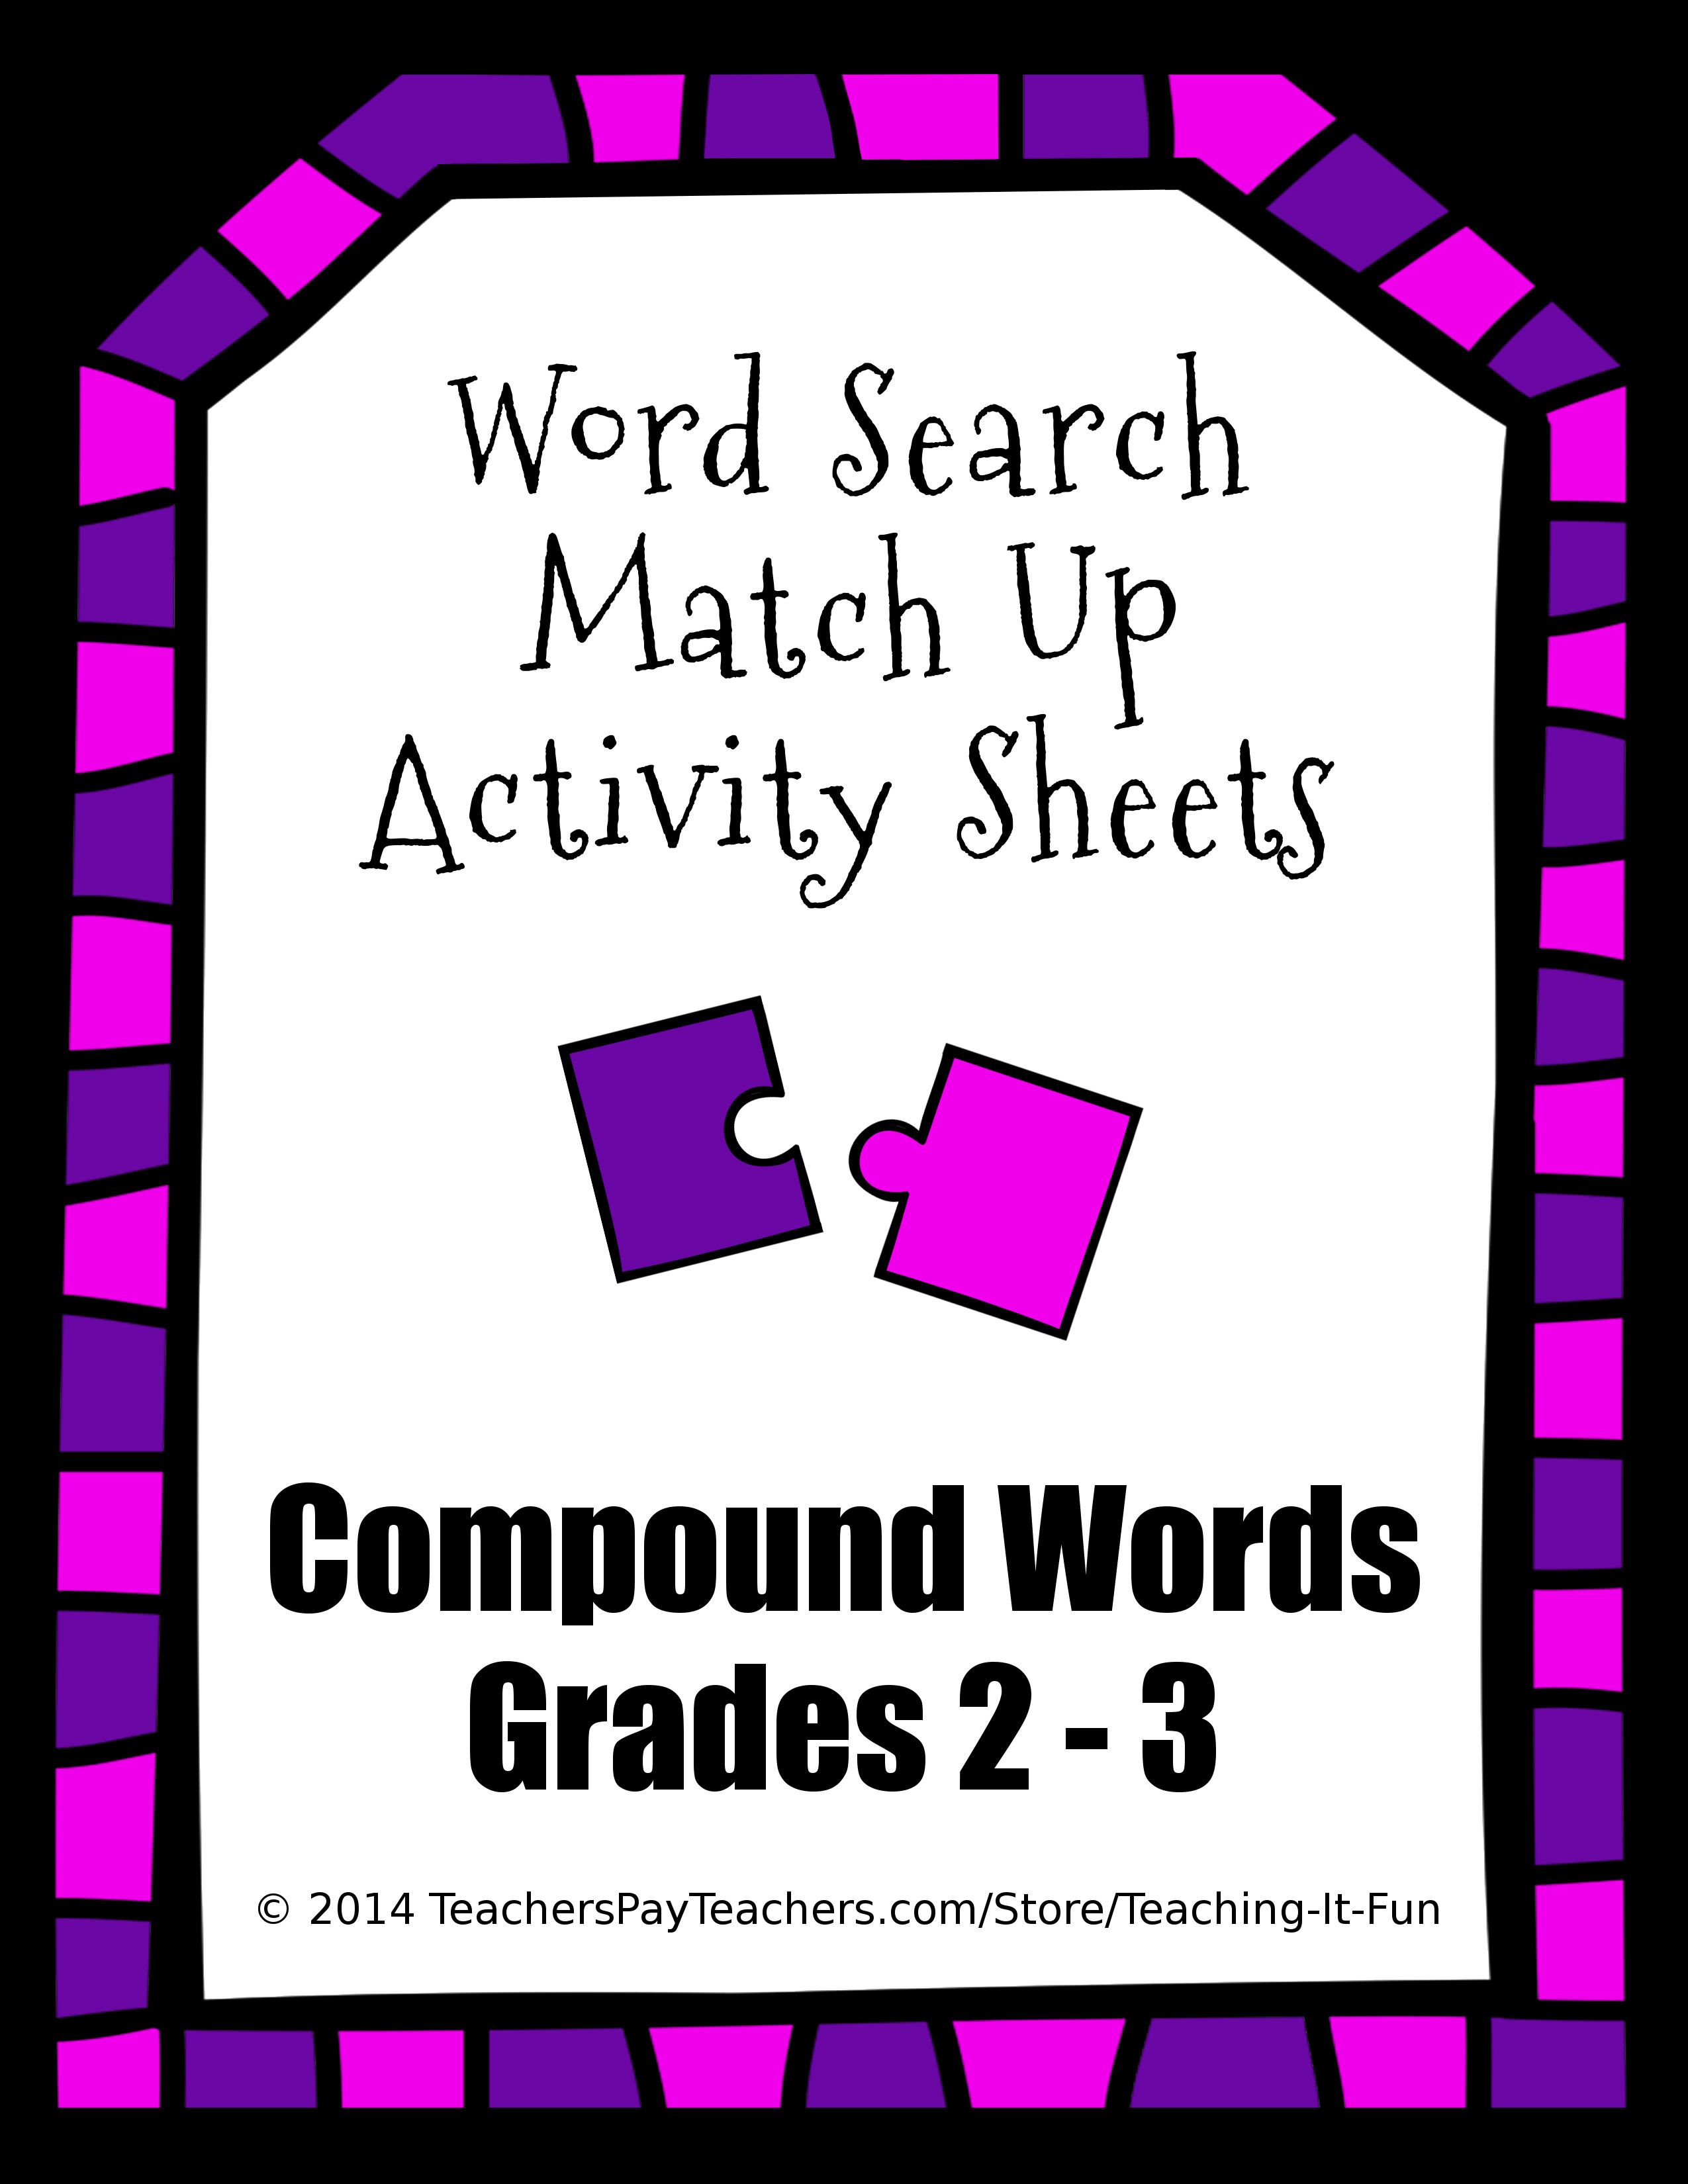 Word Search Match Up Activity Sheets Compound Words For